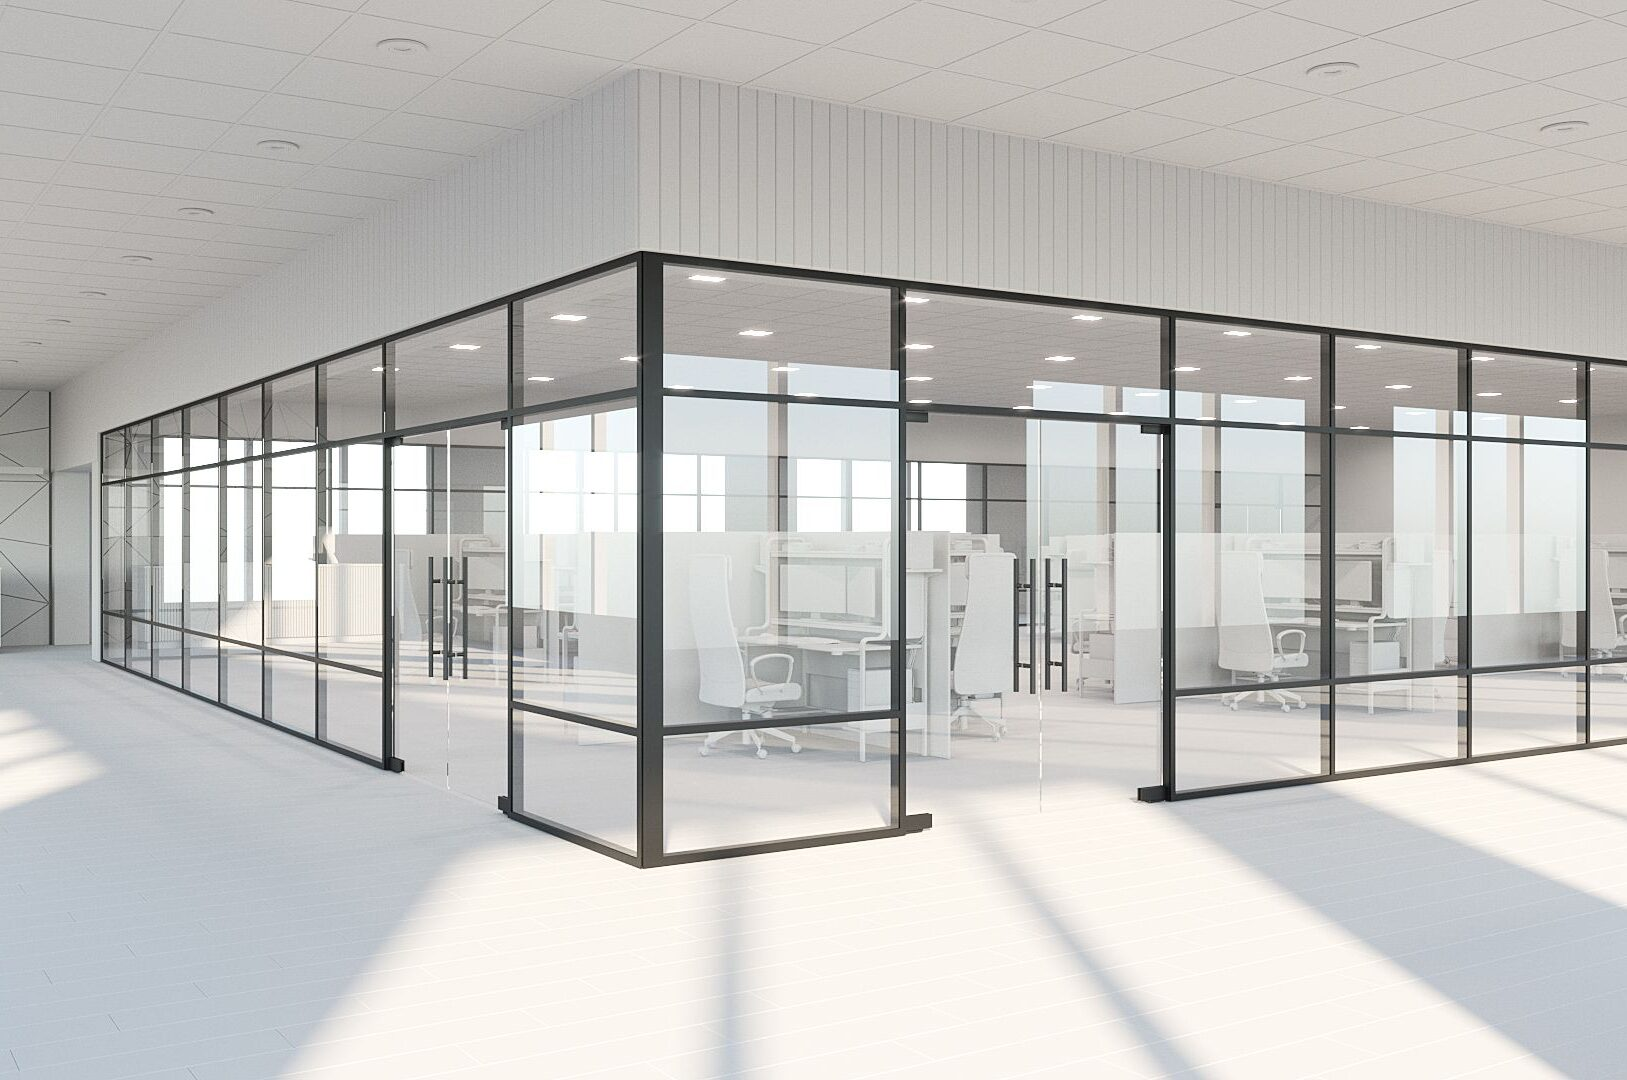 BENEFITS OF INSTALLING GLASS WALLS IN YOUR LOS ANGELES OFFICE